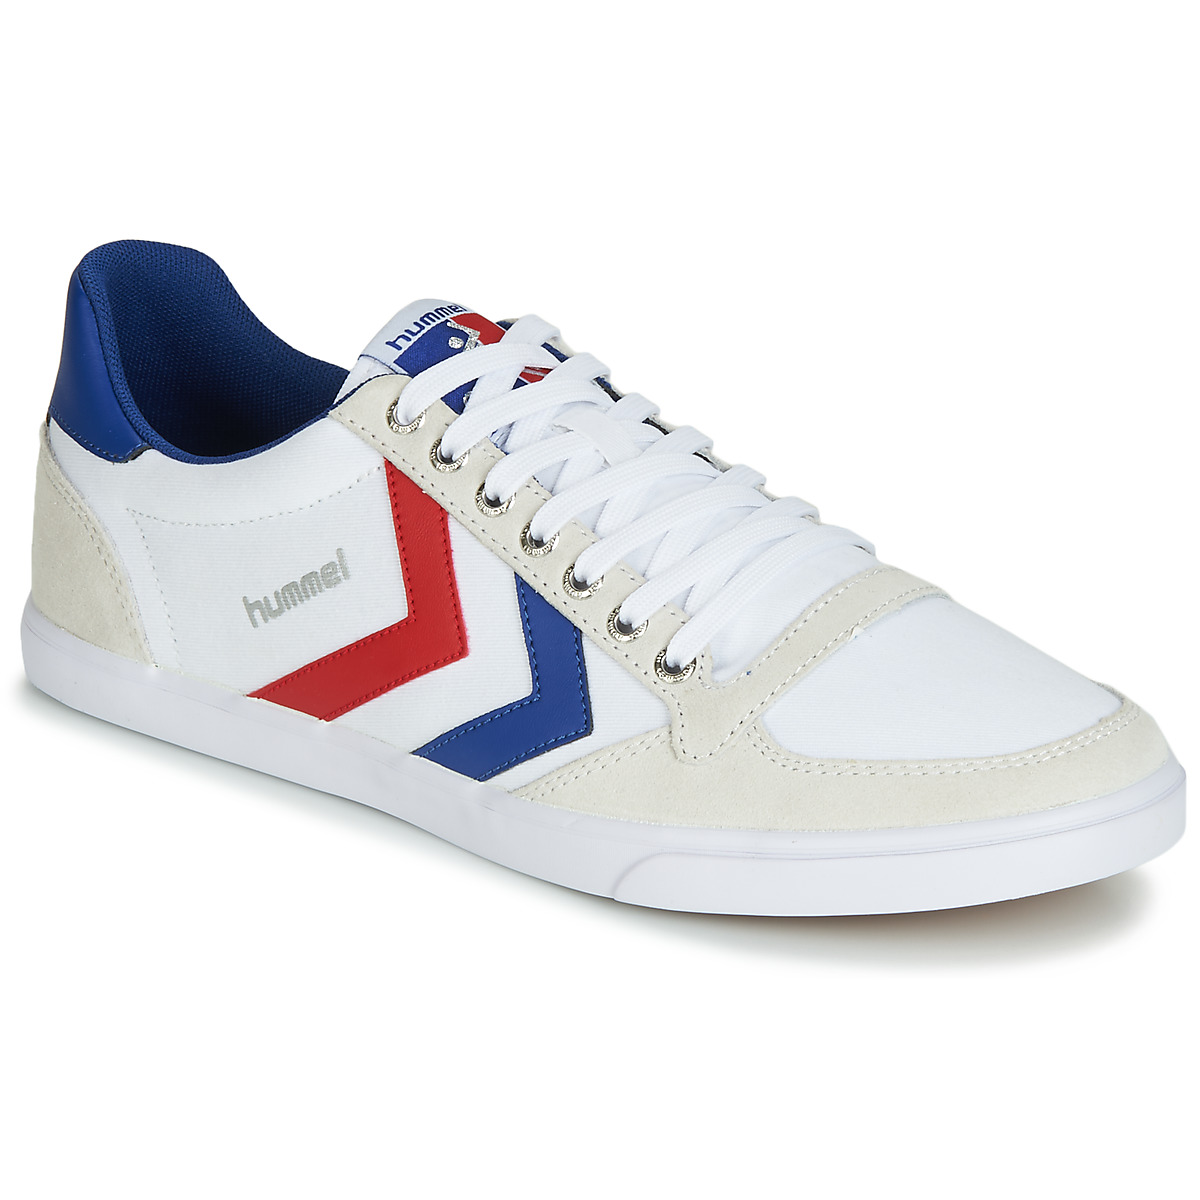 Hummel TEN STAR LOW CANVAS Weiss / Rot / Blau